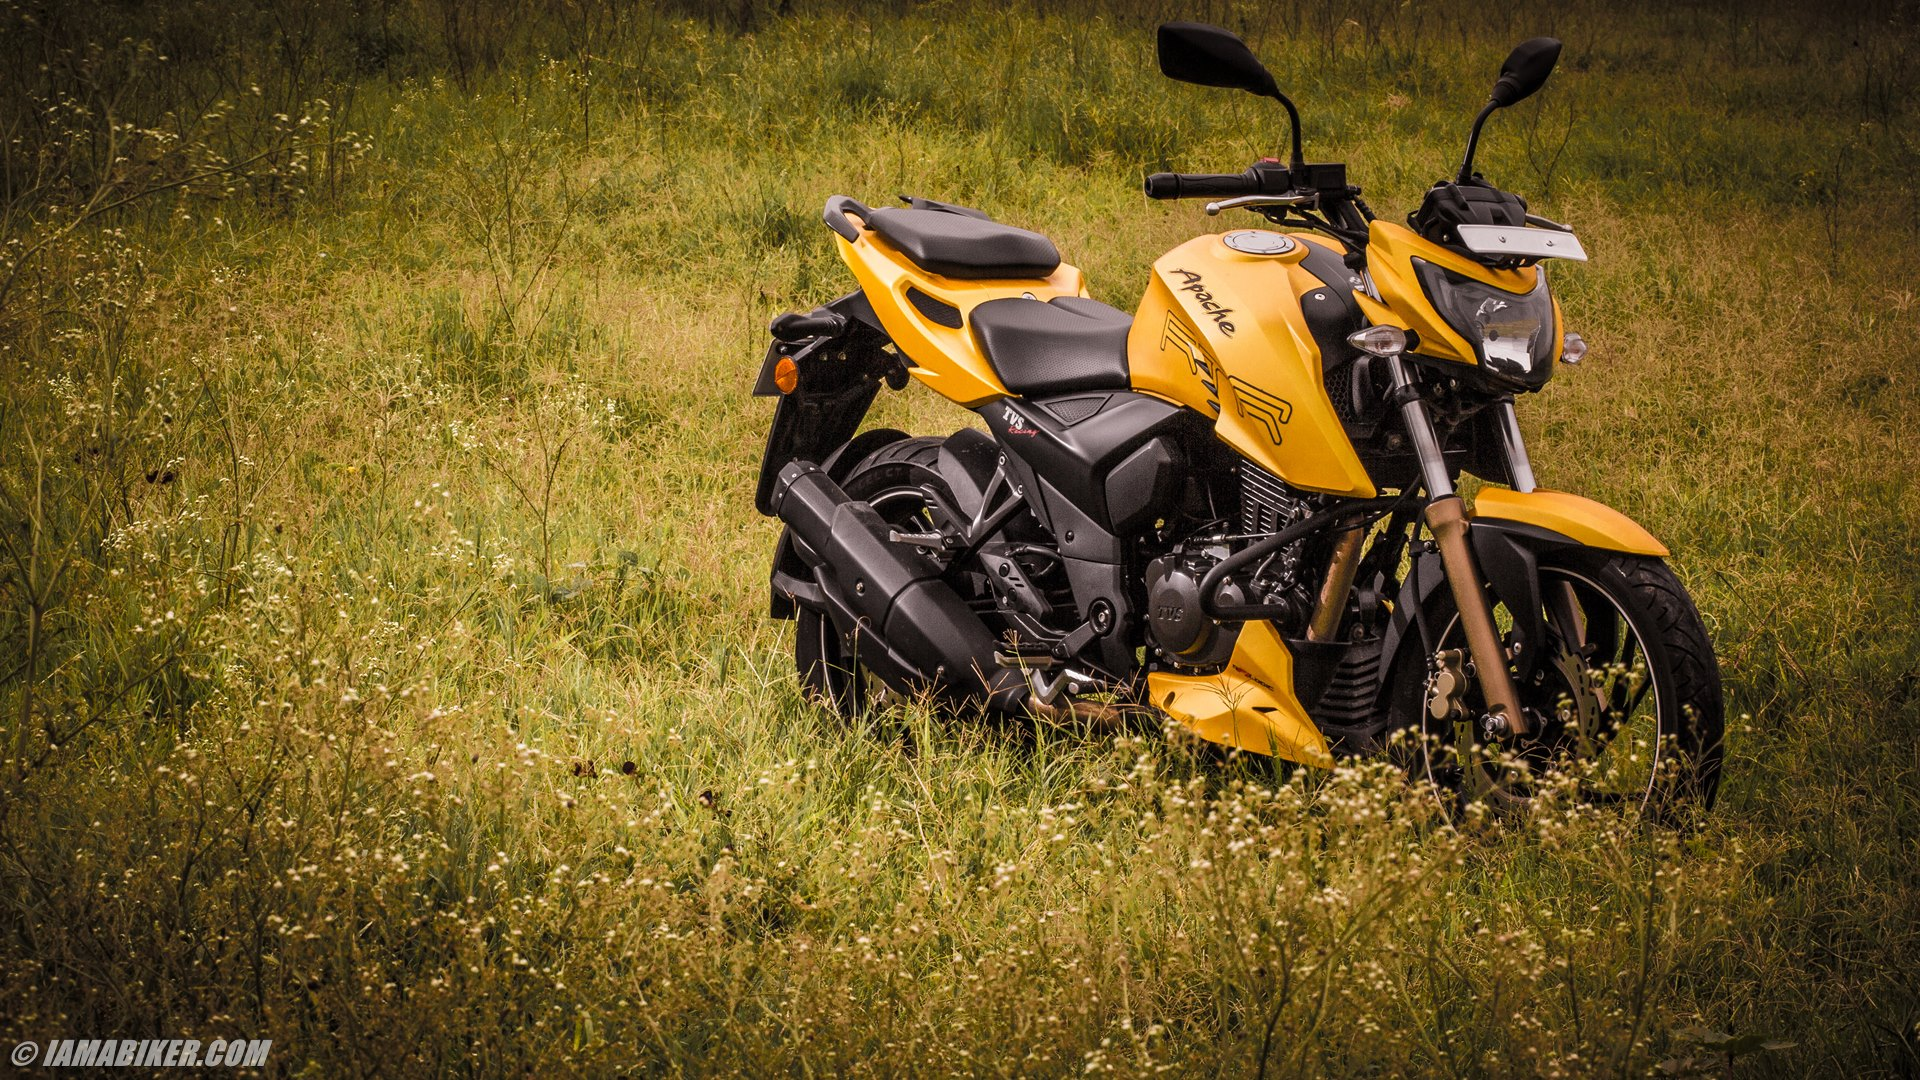 Apache RTR 200 HD wallpapers